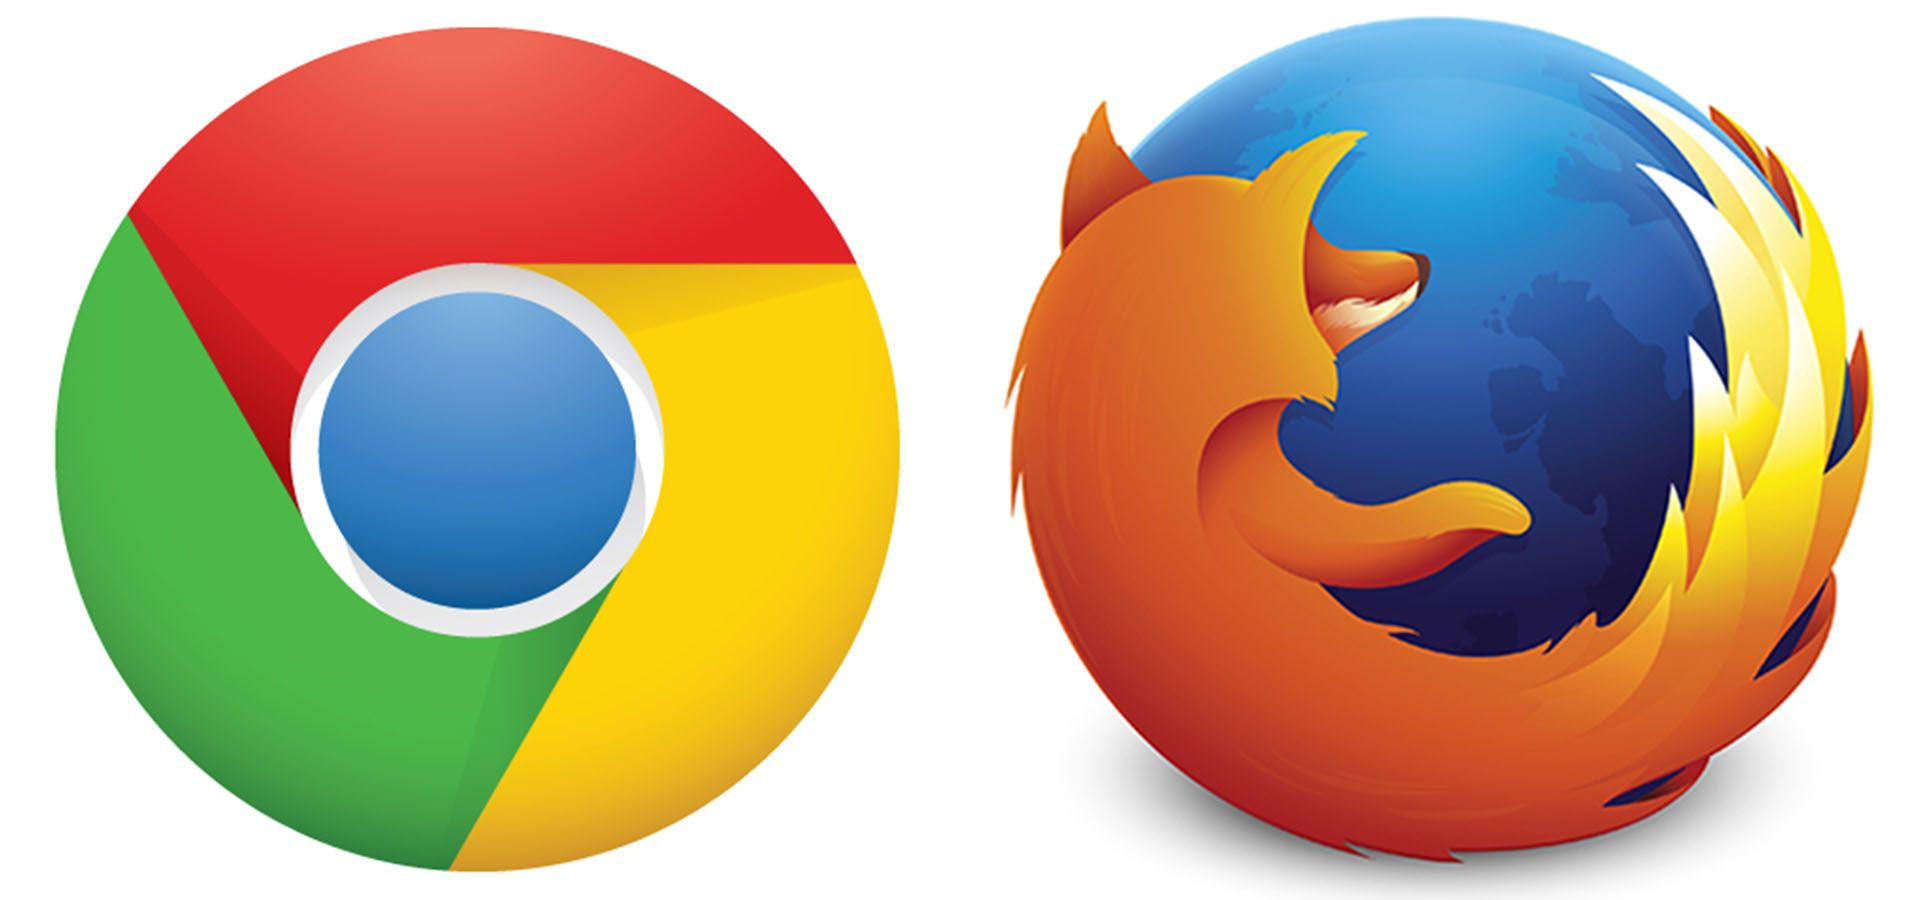 Chrome ili Firefox?